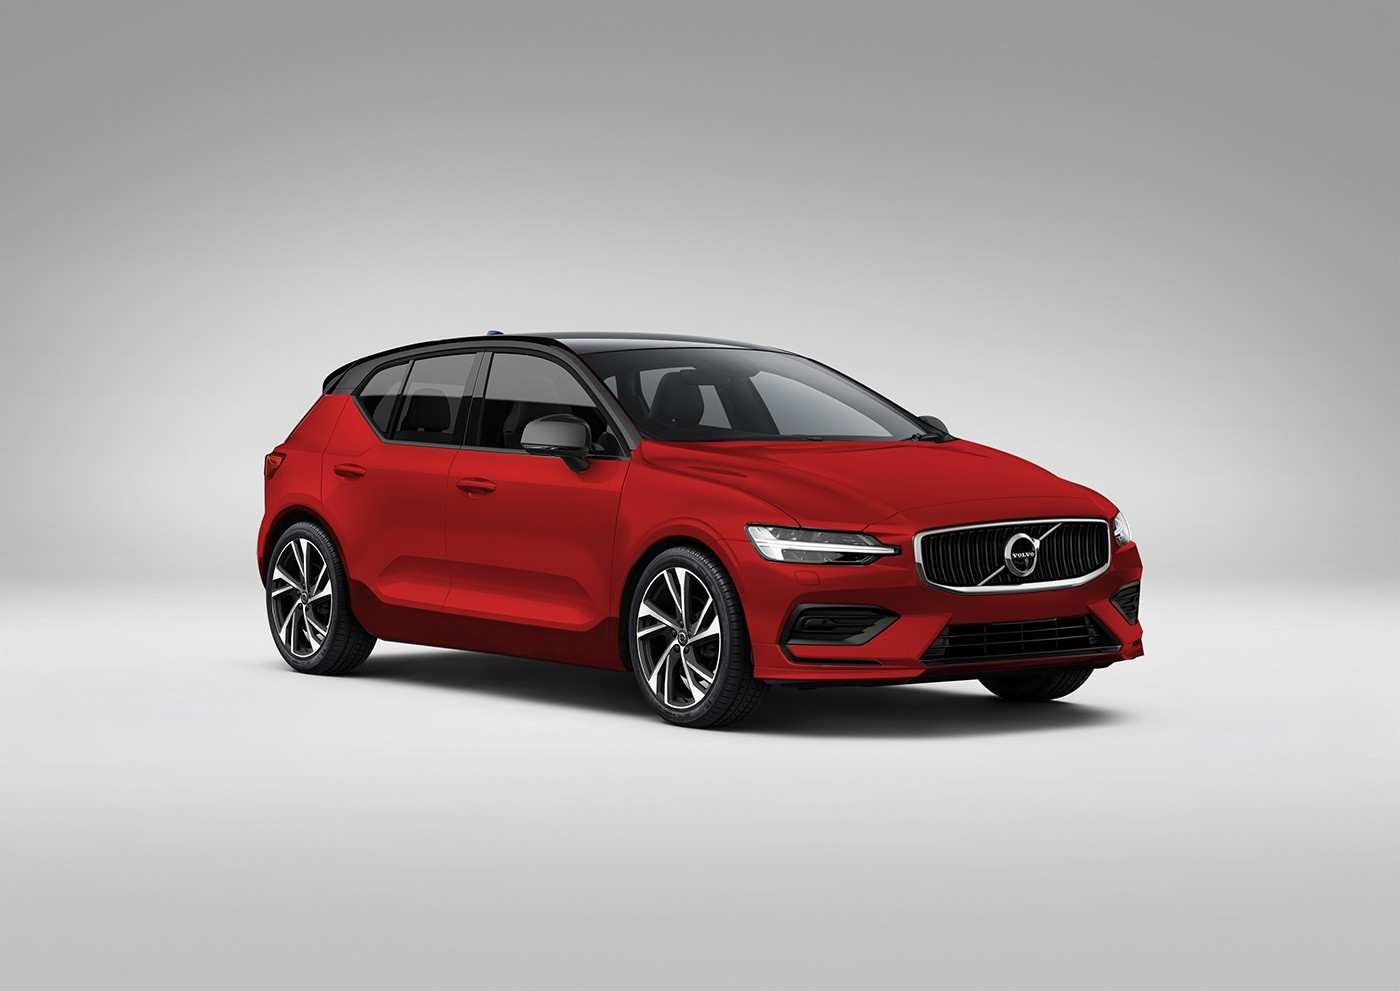 34 Best Review 2020 Volvo S40 Engine by 2020 Volvo S40